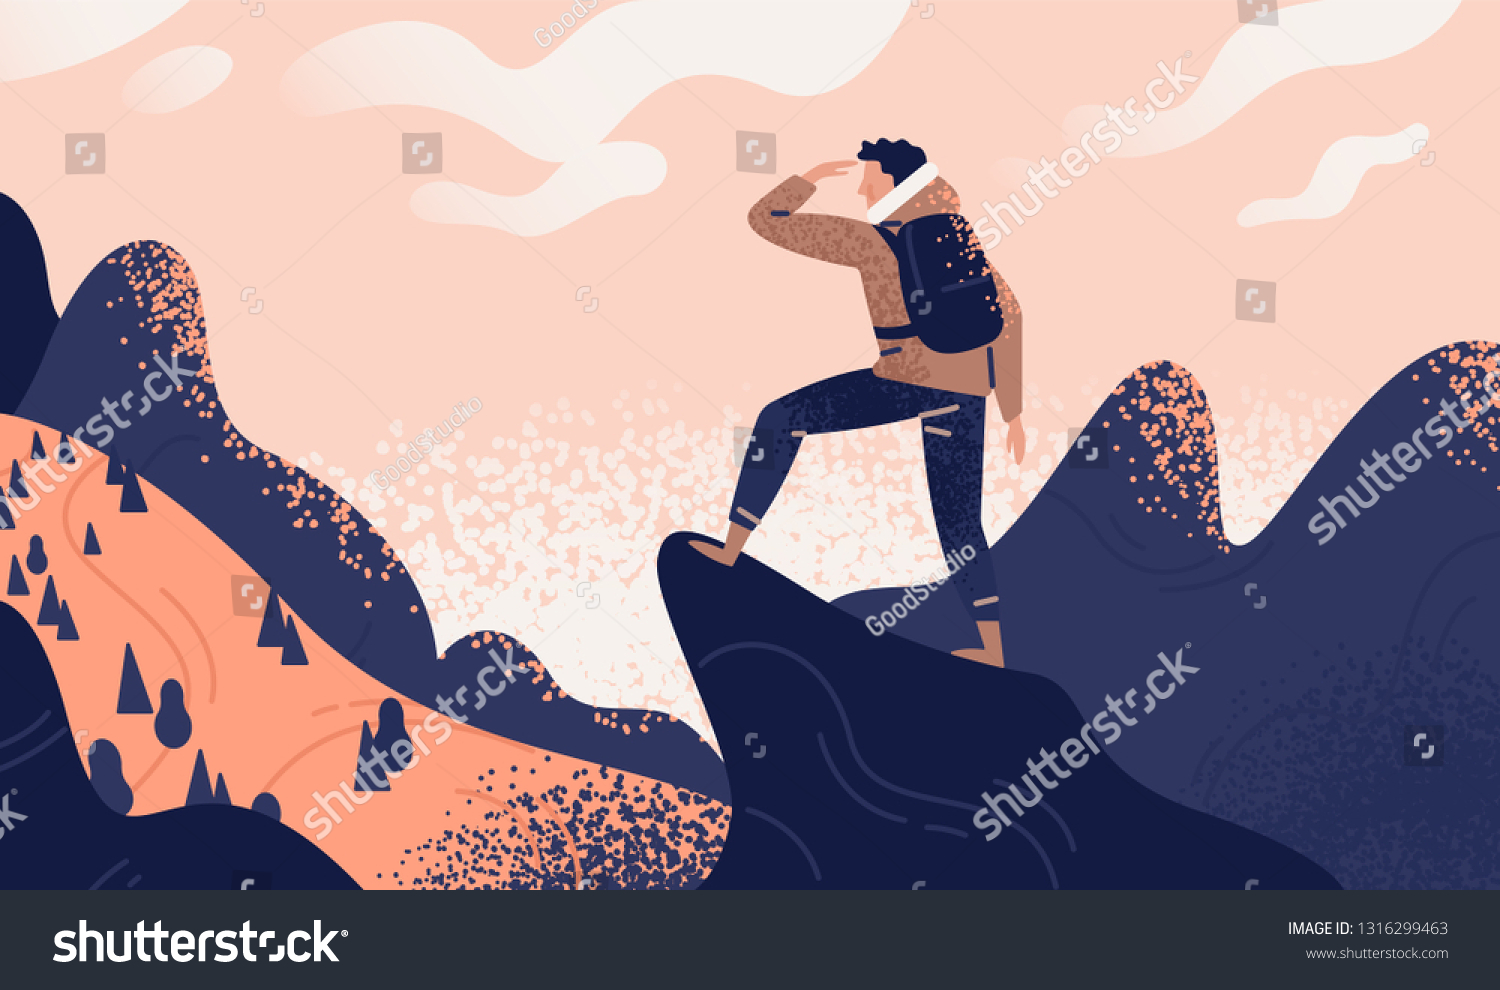 Man with backpack, traveller or explorer standing on top of mountain or cliff and looking on valley. Concept of discovery, exploration, hiking, adventure tourism and travel. Flat vector illustration.